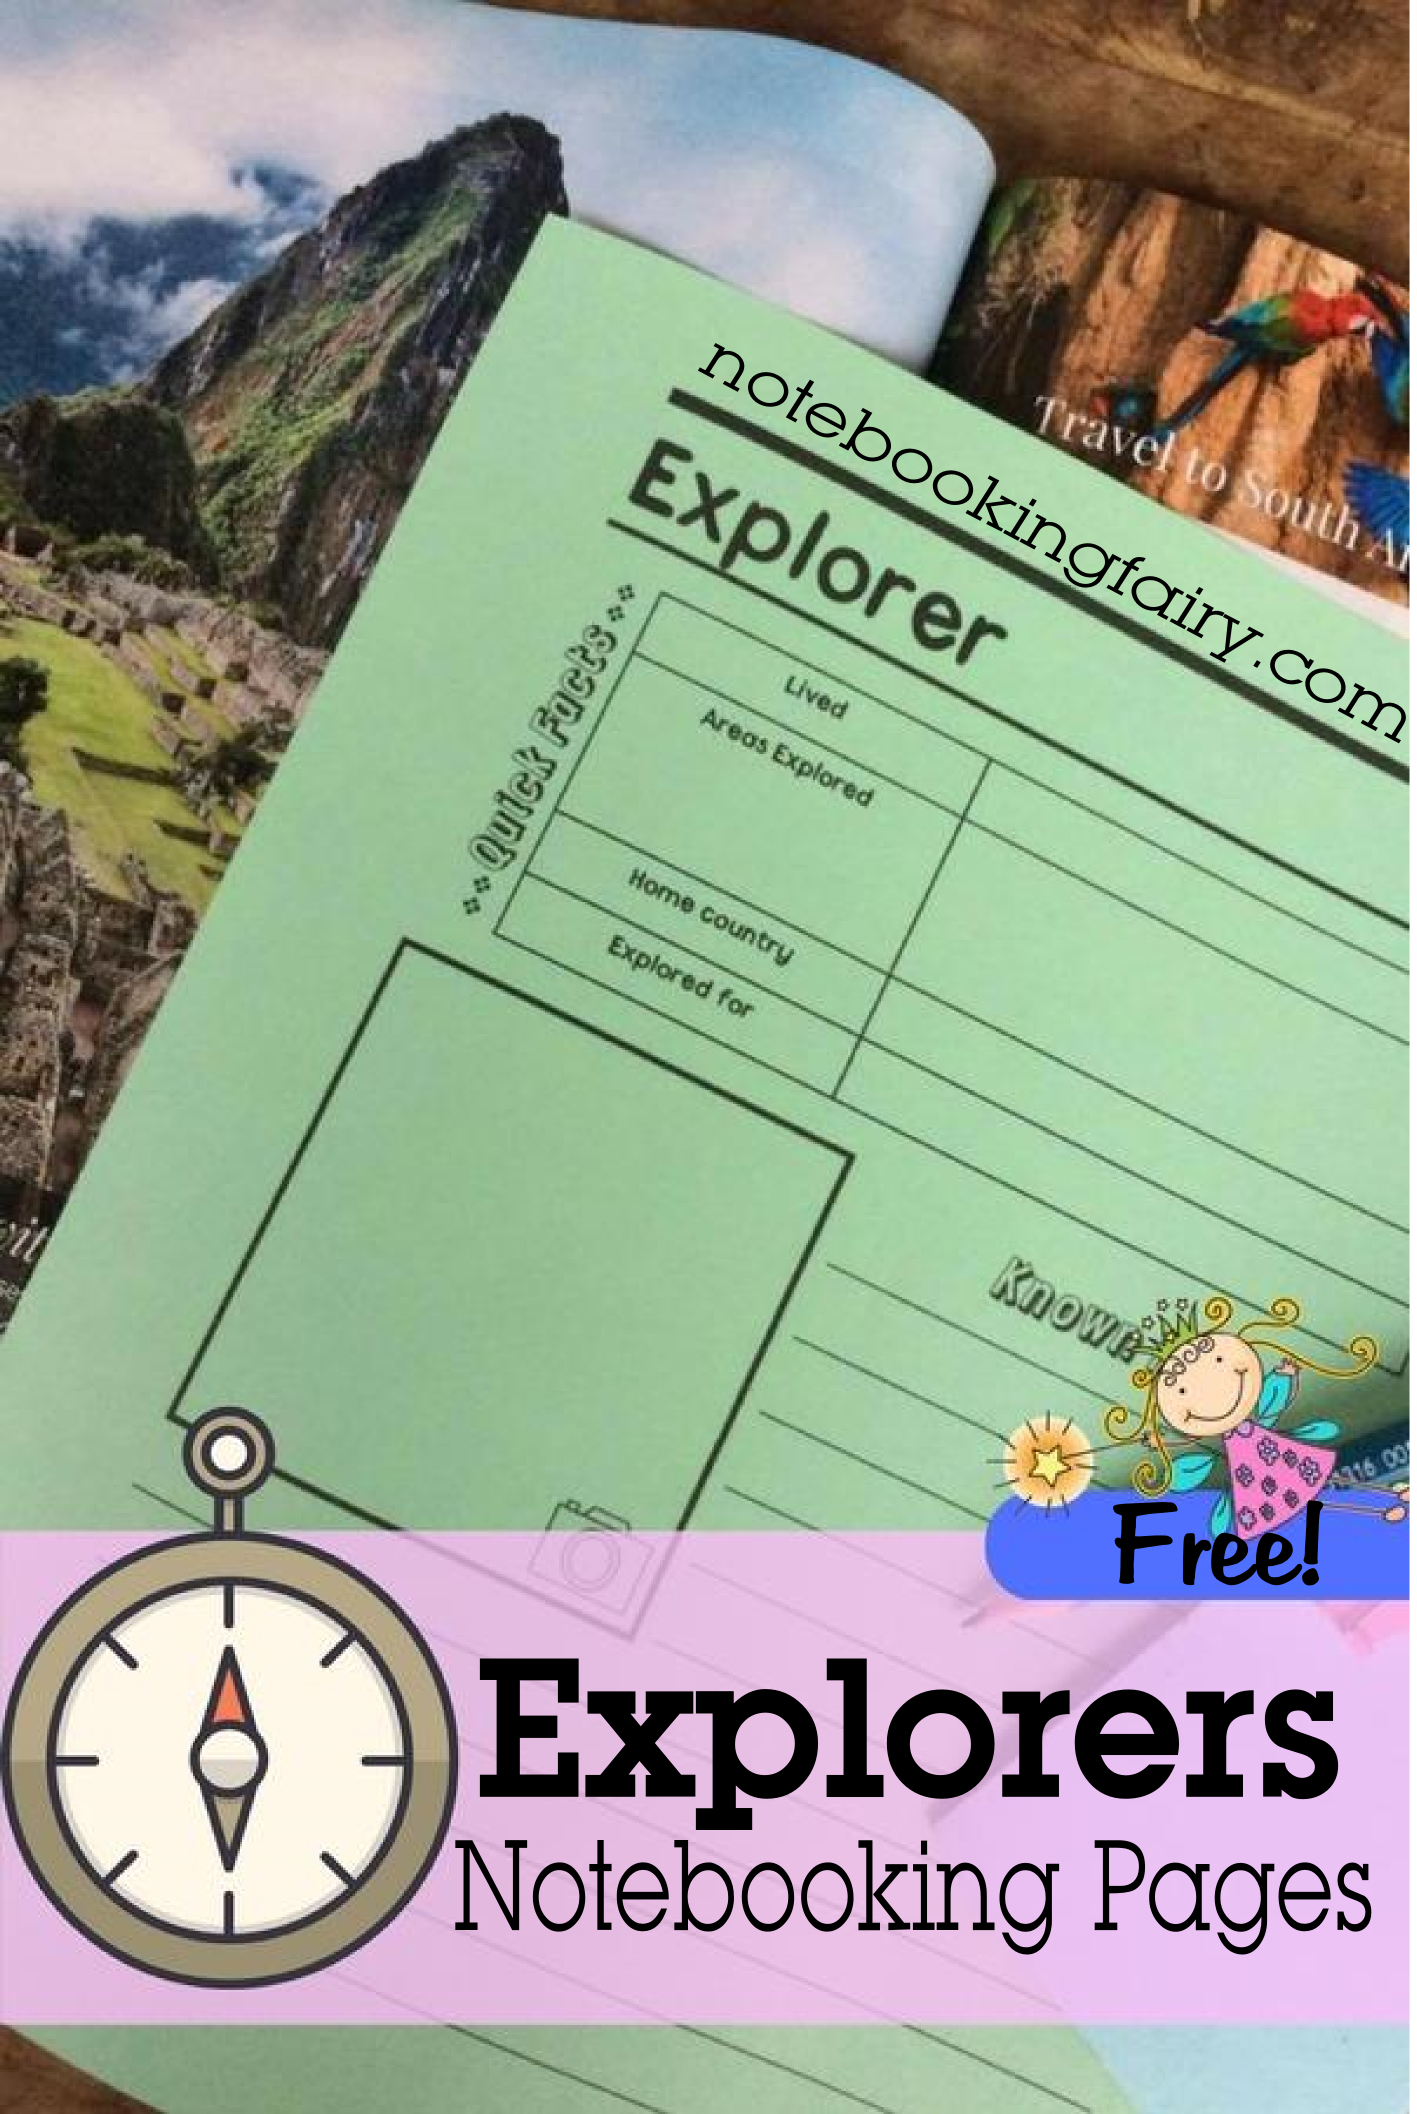 Explorers Notebooking Pages Free from the Notebooking Fairy!